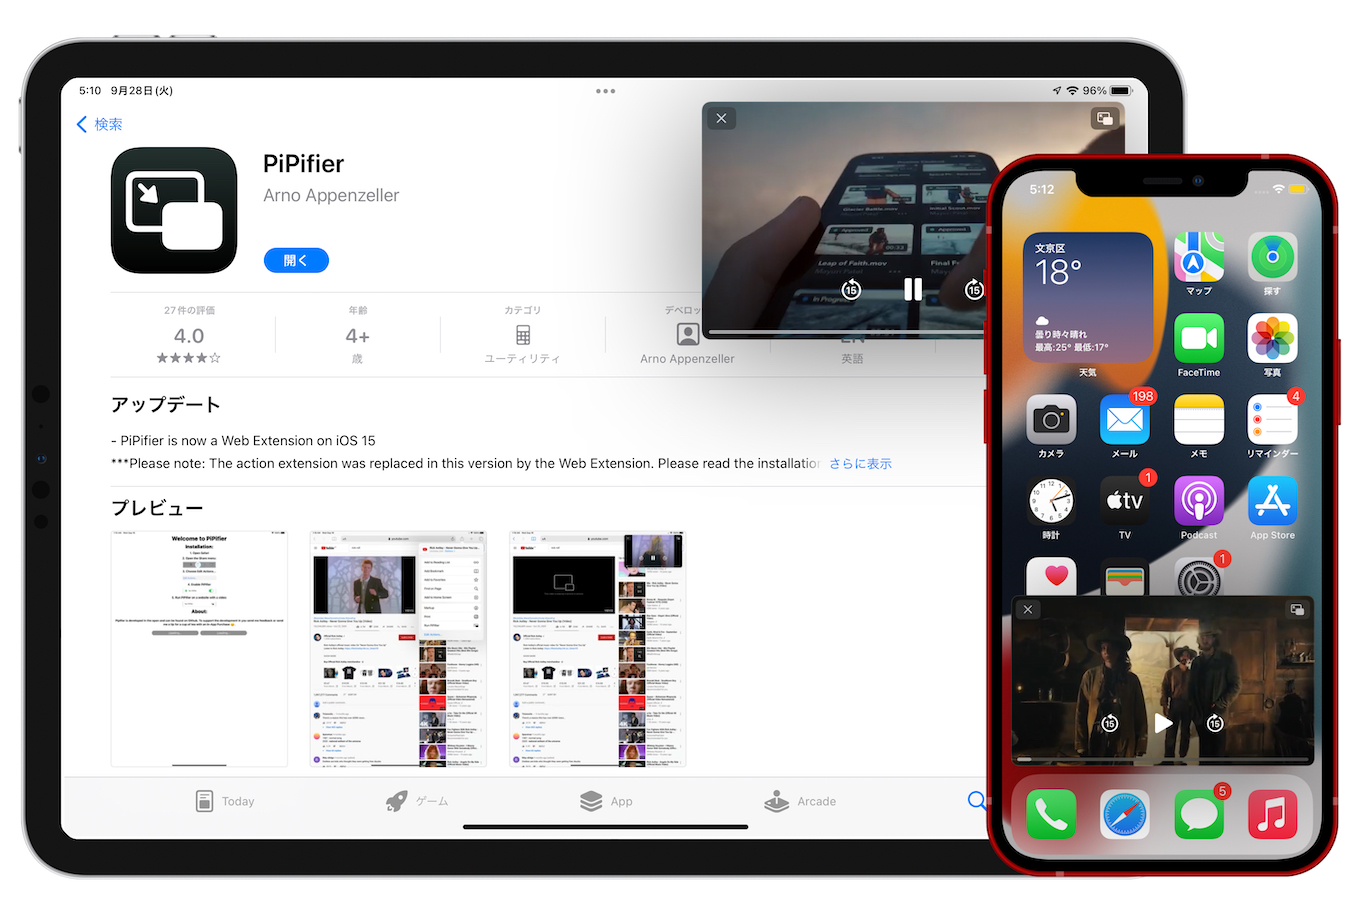 PiPifier is now a Web Extension on iOS 15